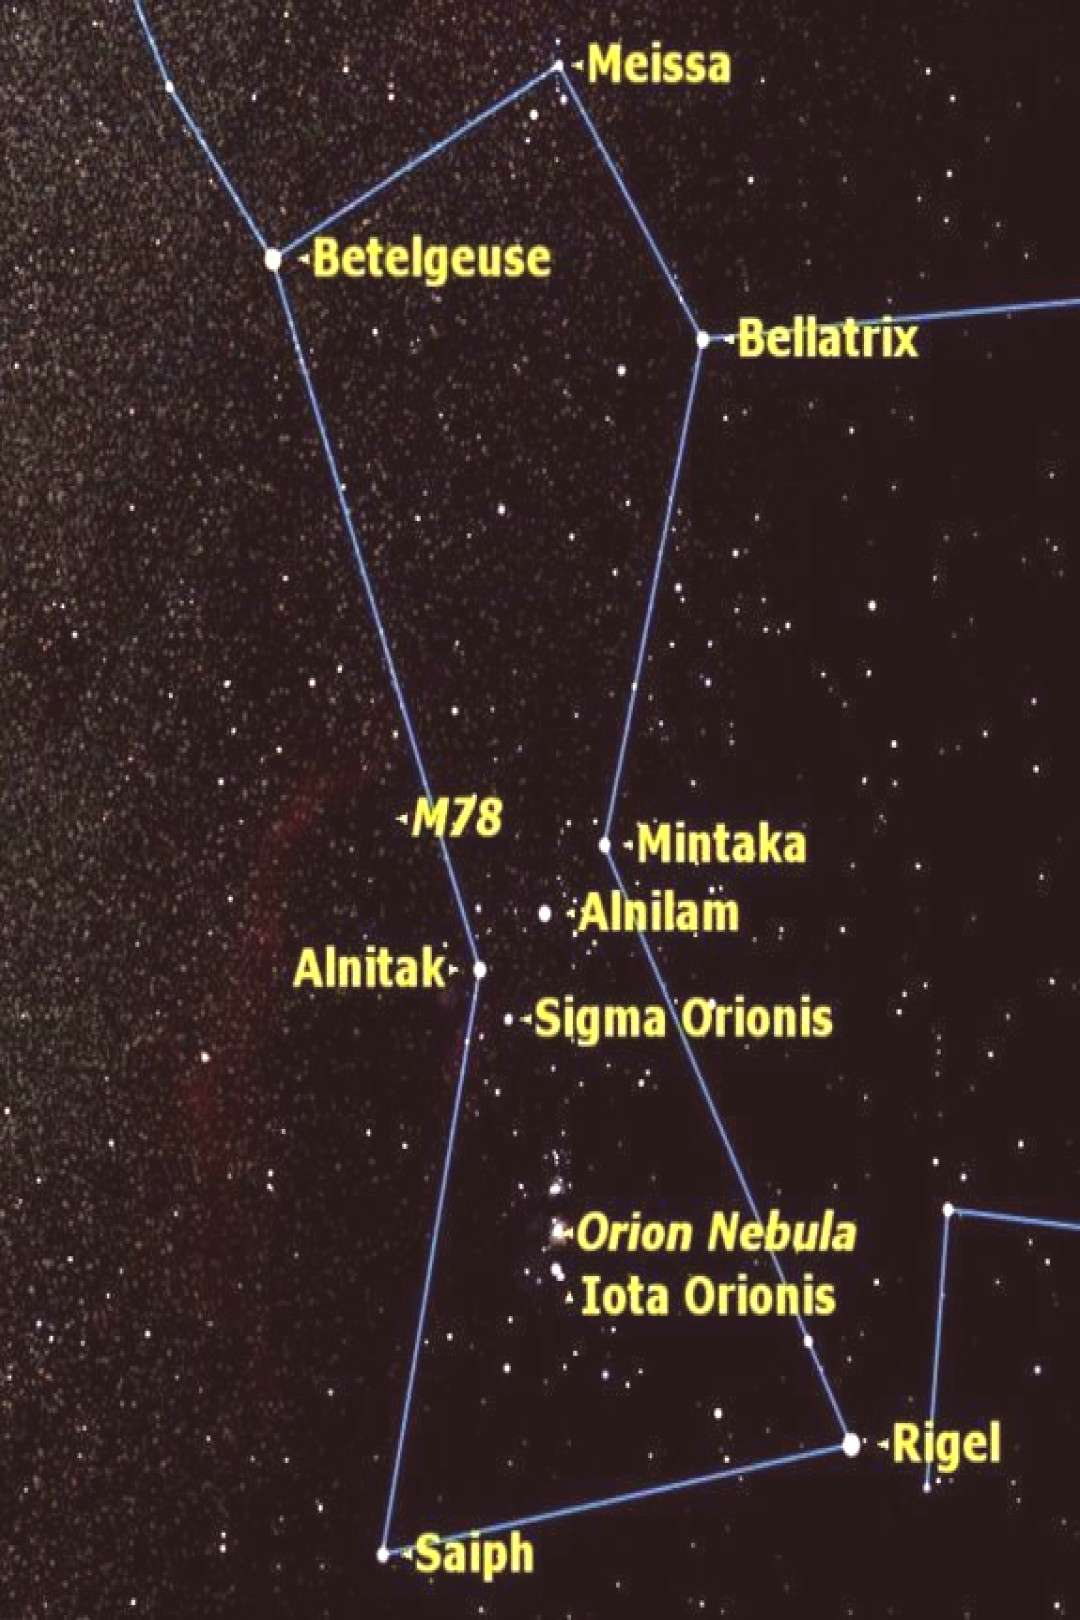 Orion is the brightest and most beautiful of the winter constellations, full of ..., - Orion is t